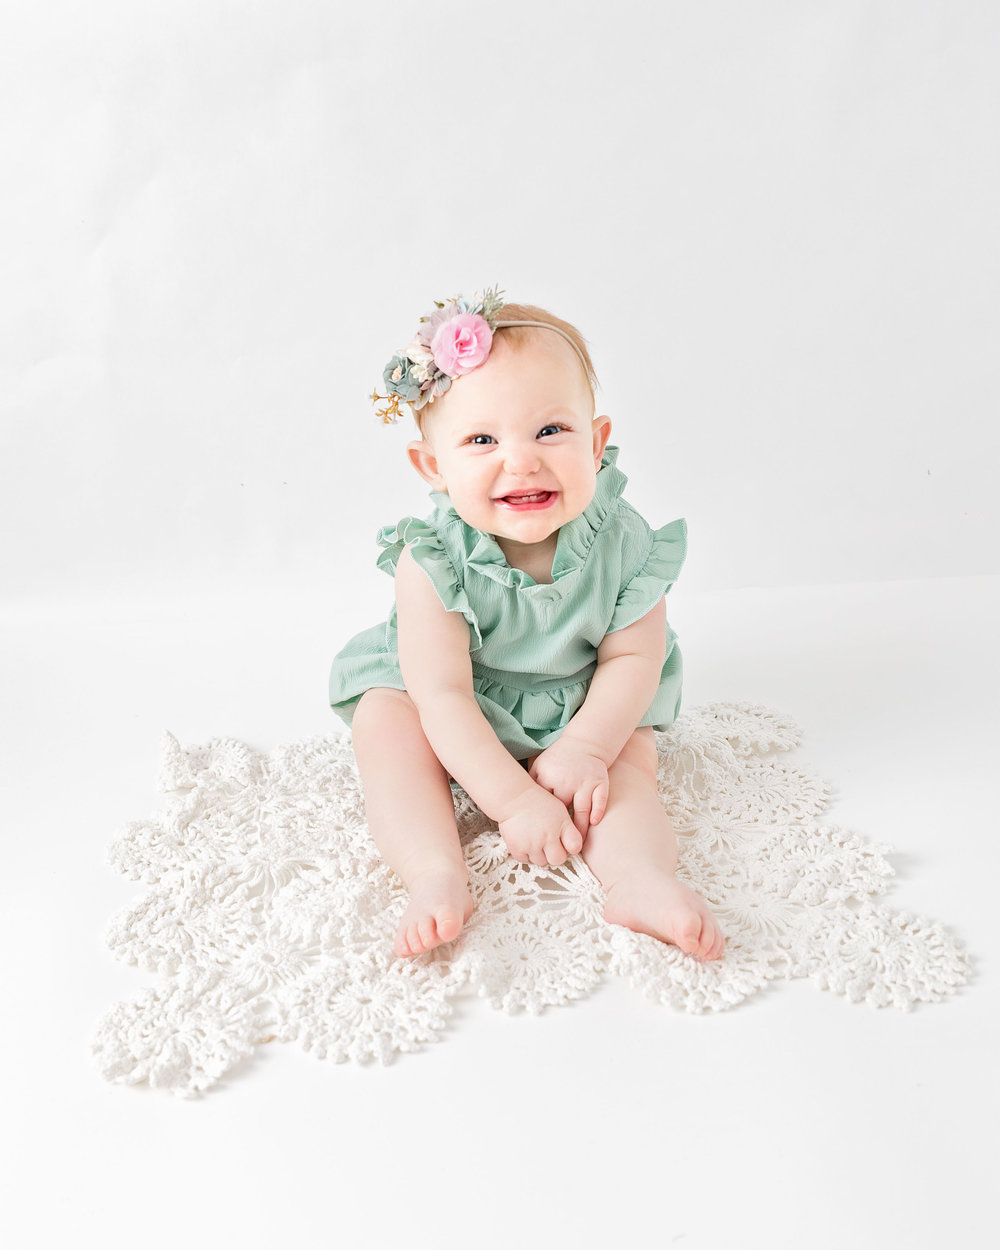 amazing-baby-images-baby-photoshoot-milestone-photography-nine-month-pictures.jpg